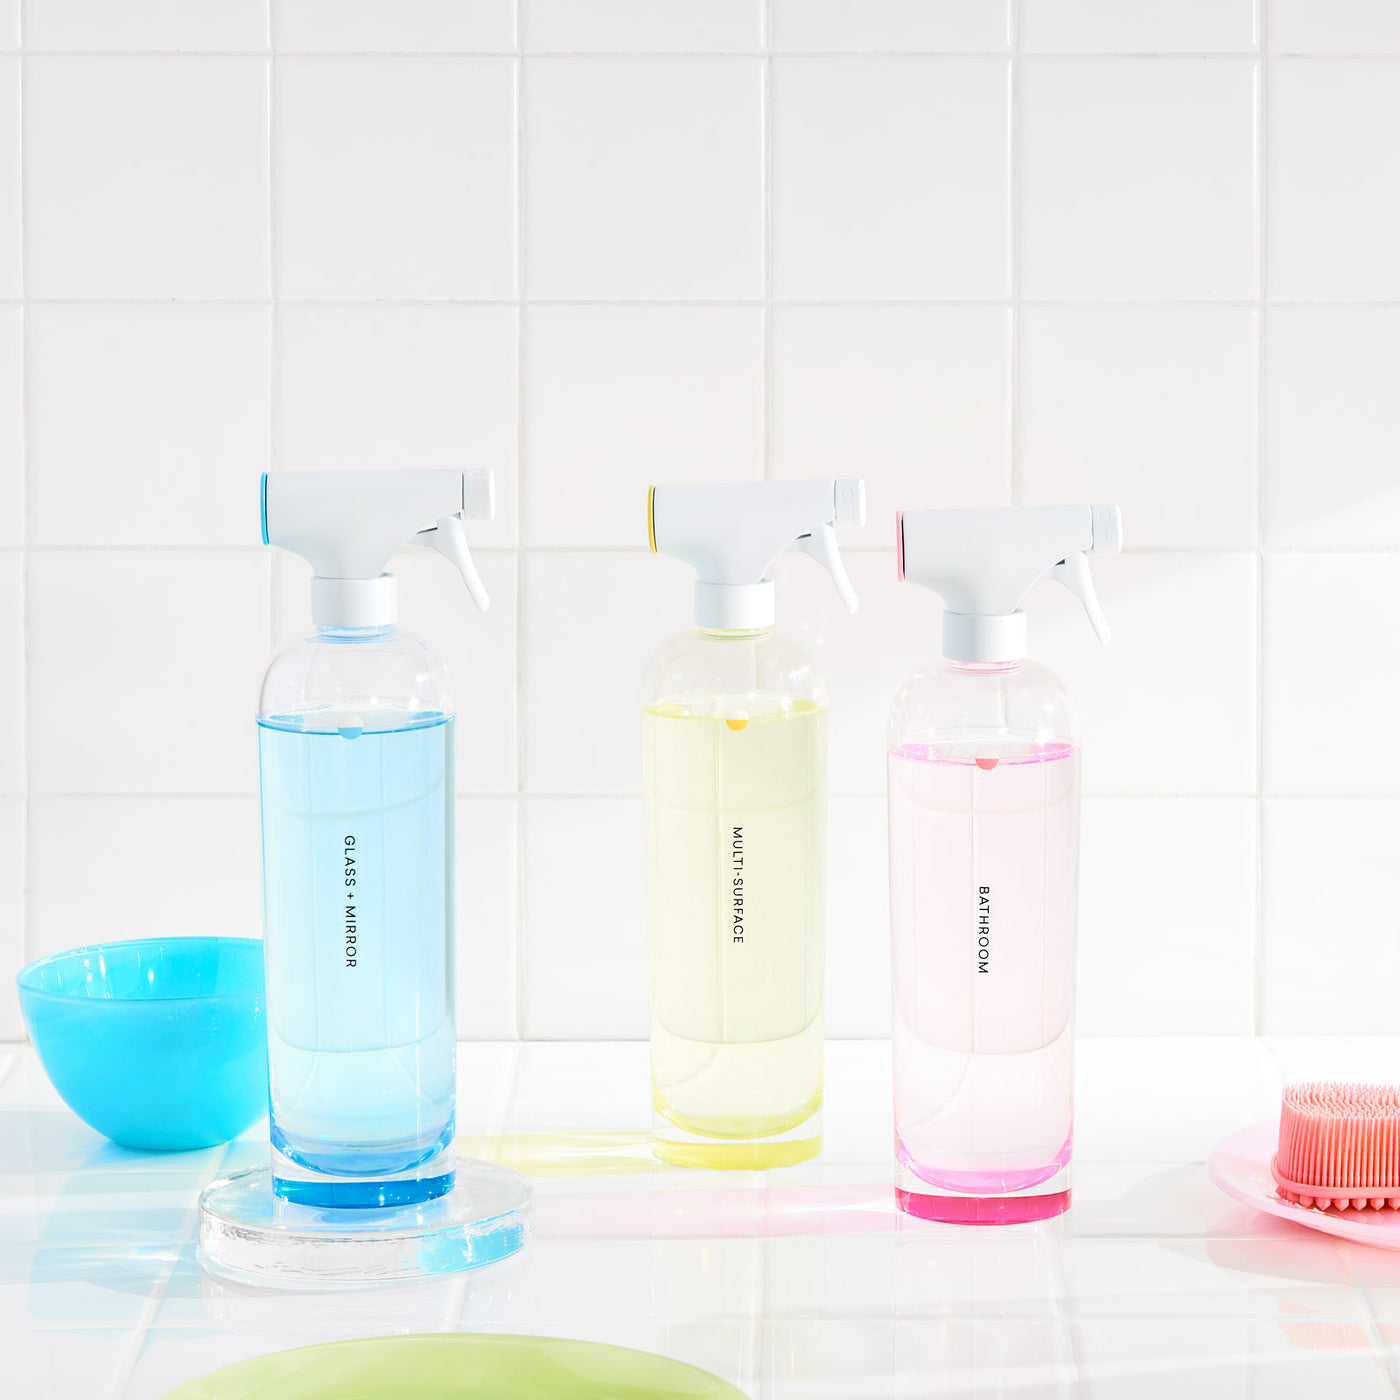 Non-toxic cleaners, scented and unscented, on display, with refillable tablets against white tile with blue bowl and pink silicone sponge